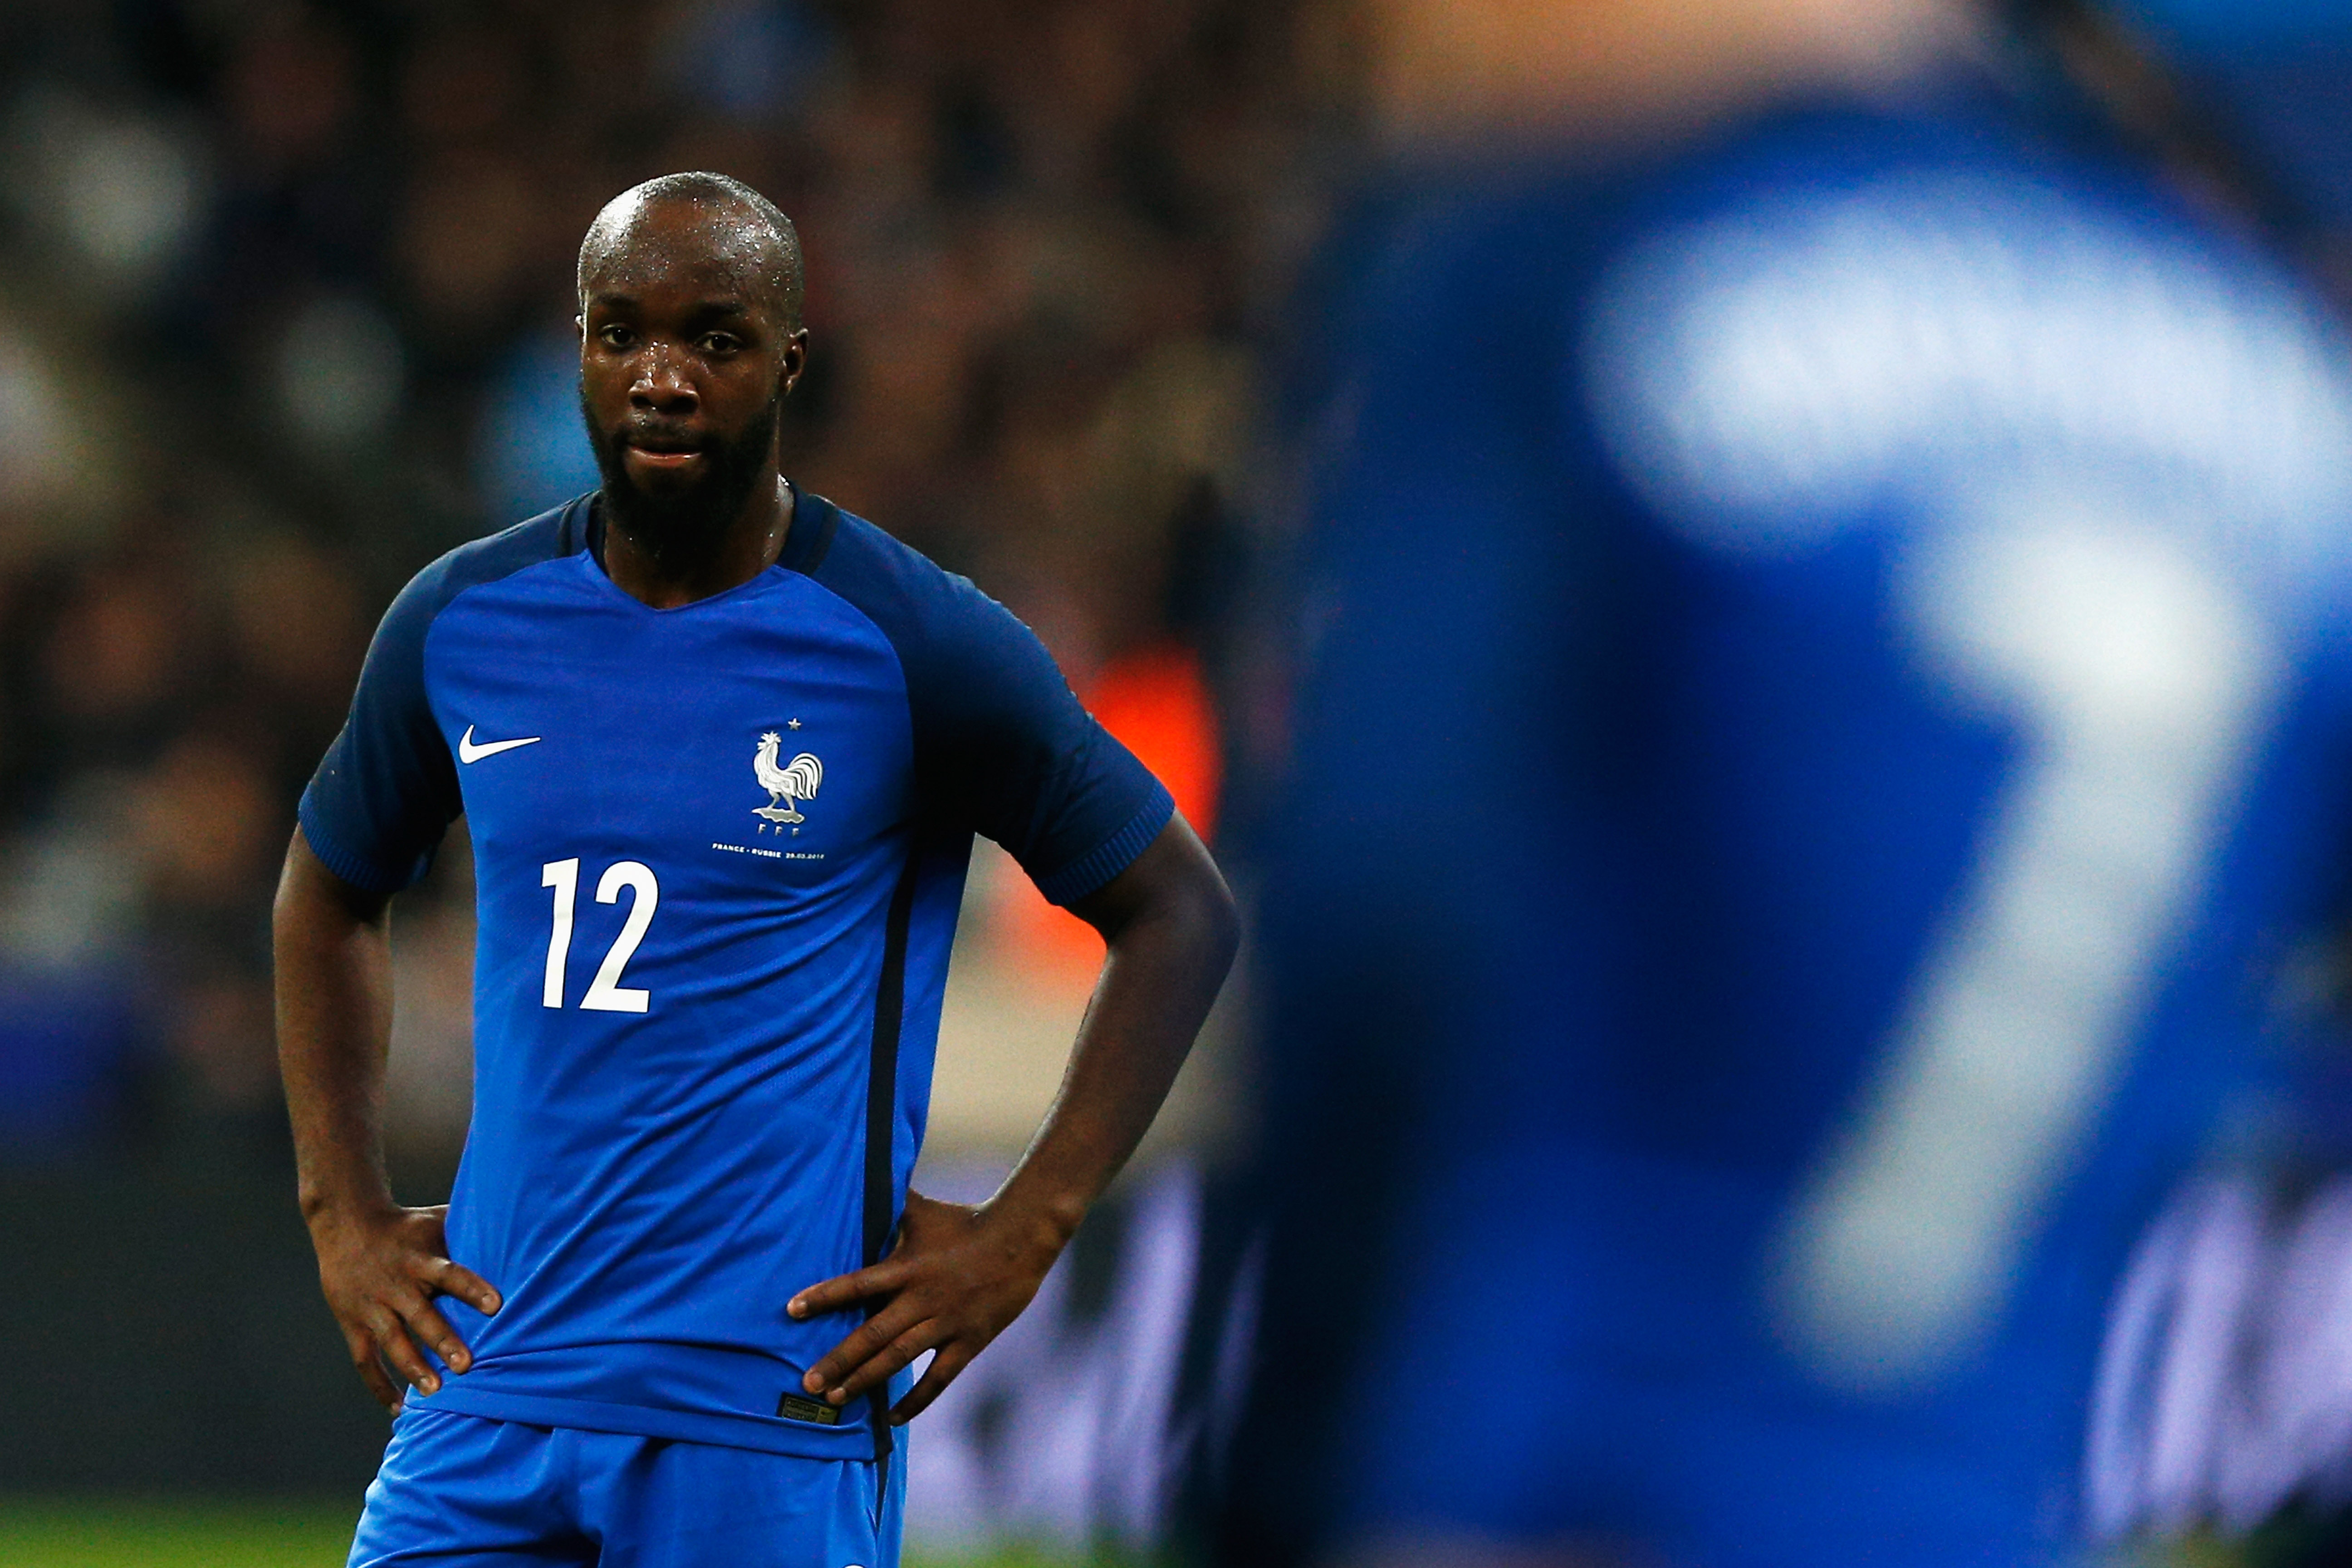 PARIS, FRANCE - MARCH 29:  Lassana Diarra of France looks on during the International Friendly match between France and Russia held at Stade de France on March 29, 2016 in Paris, France.  (Photo by Dean Mouhtaropoulos/Getty Images)